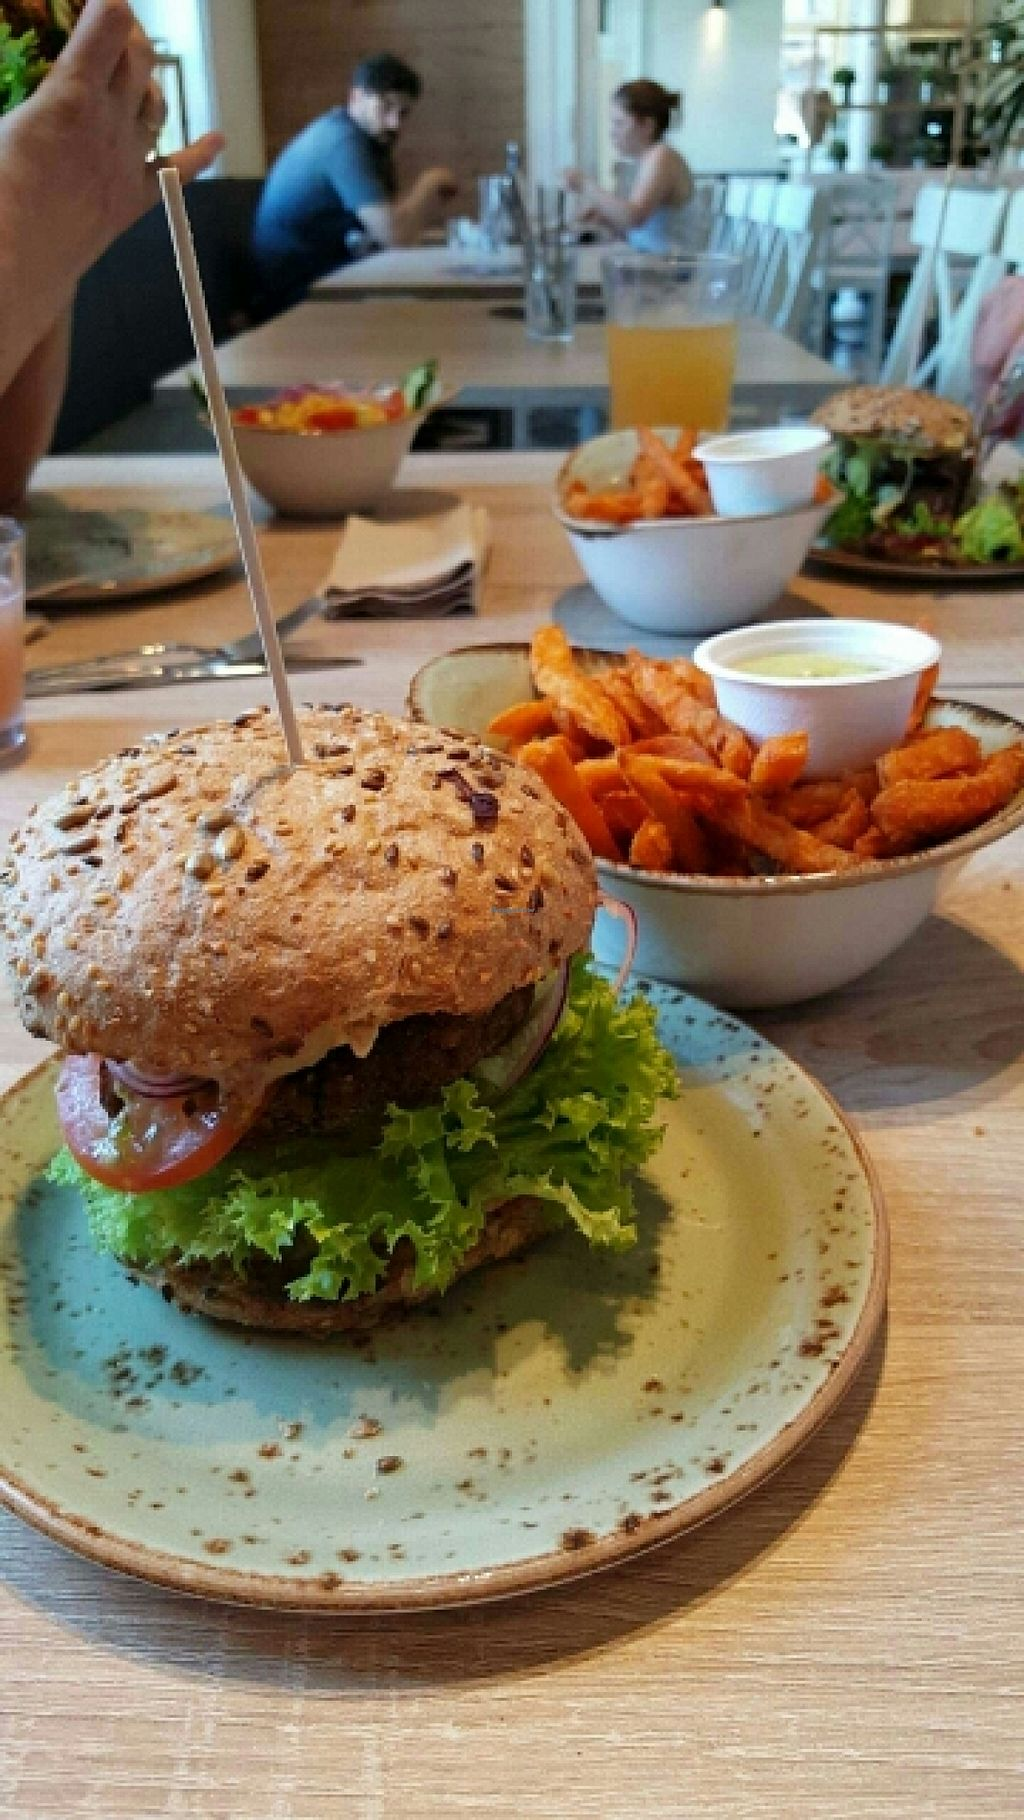 """Photo of CLOSED: My Heart Beats Vegan  by <a href=""""/members/profile/davehk"""">davehk</a> <br/>Mama Marrakesch burger with sweet potato chips <br/> June 25, 2016  - <a href='/contact/abuse/image/73364/155987'>Report</a>"""